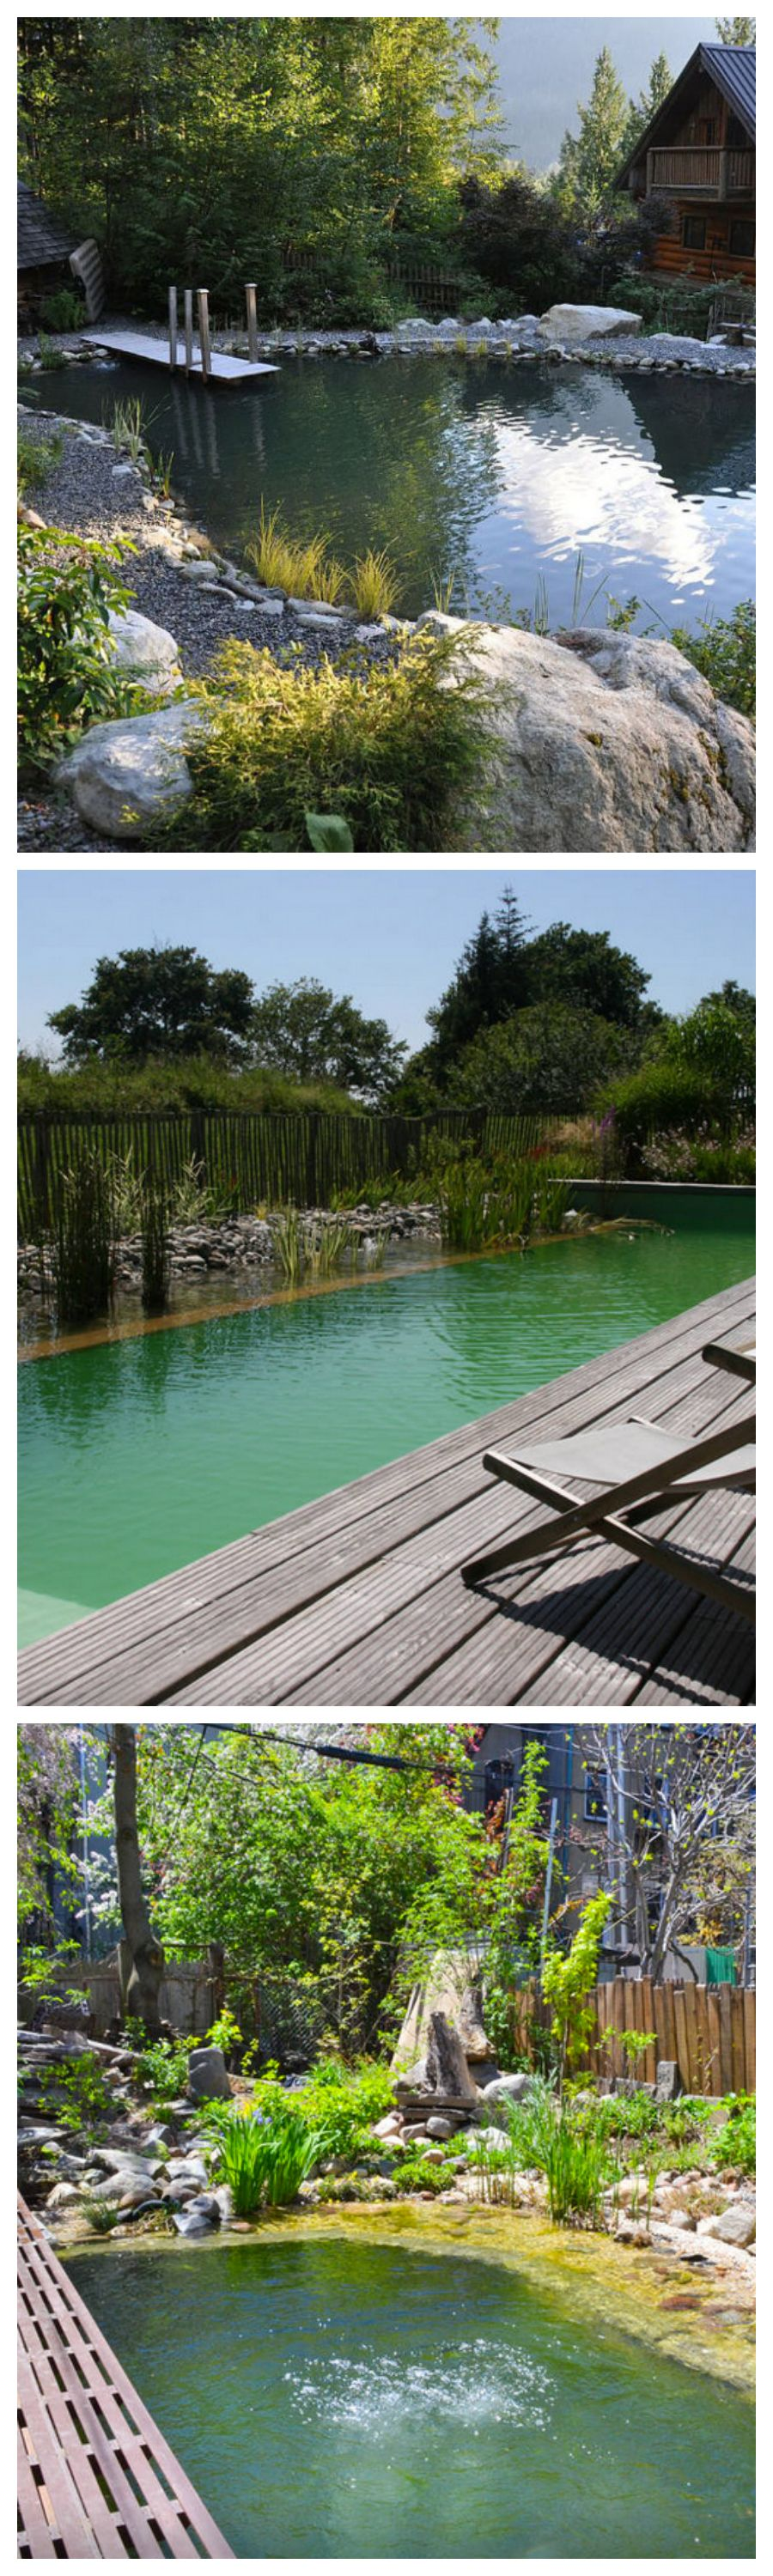 6 Homes Starring Stunning All Natural Pools